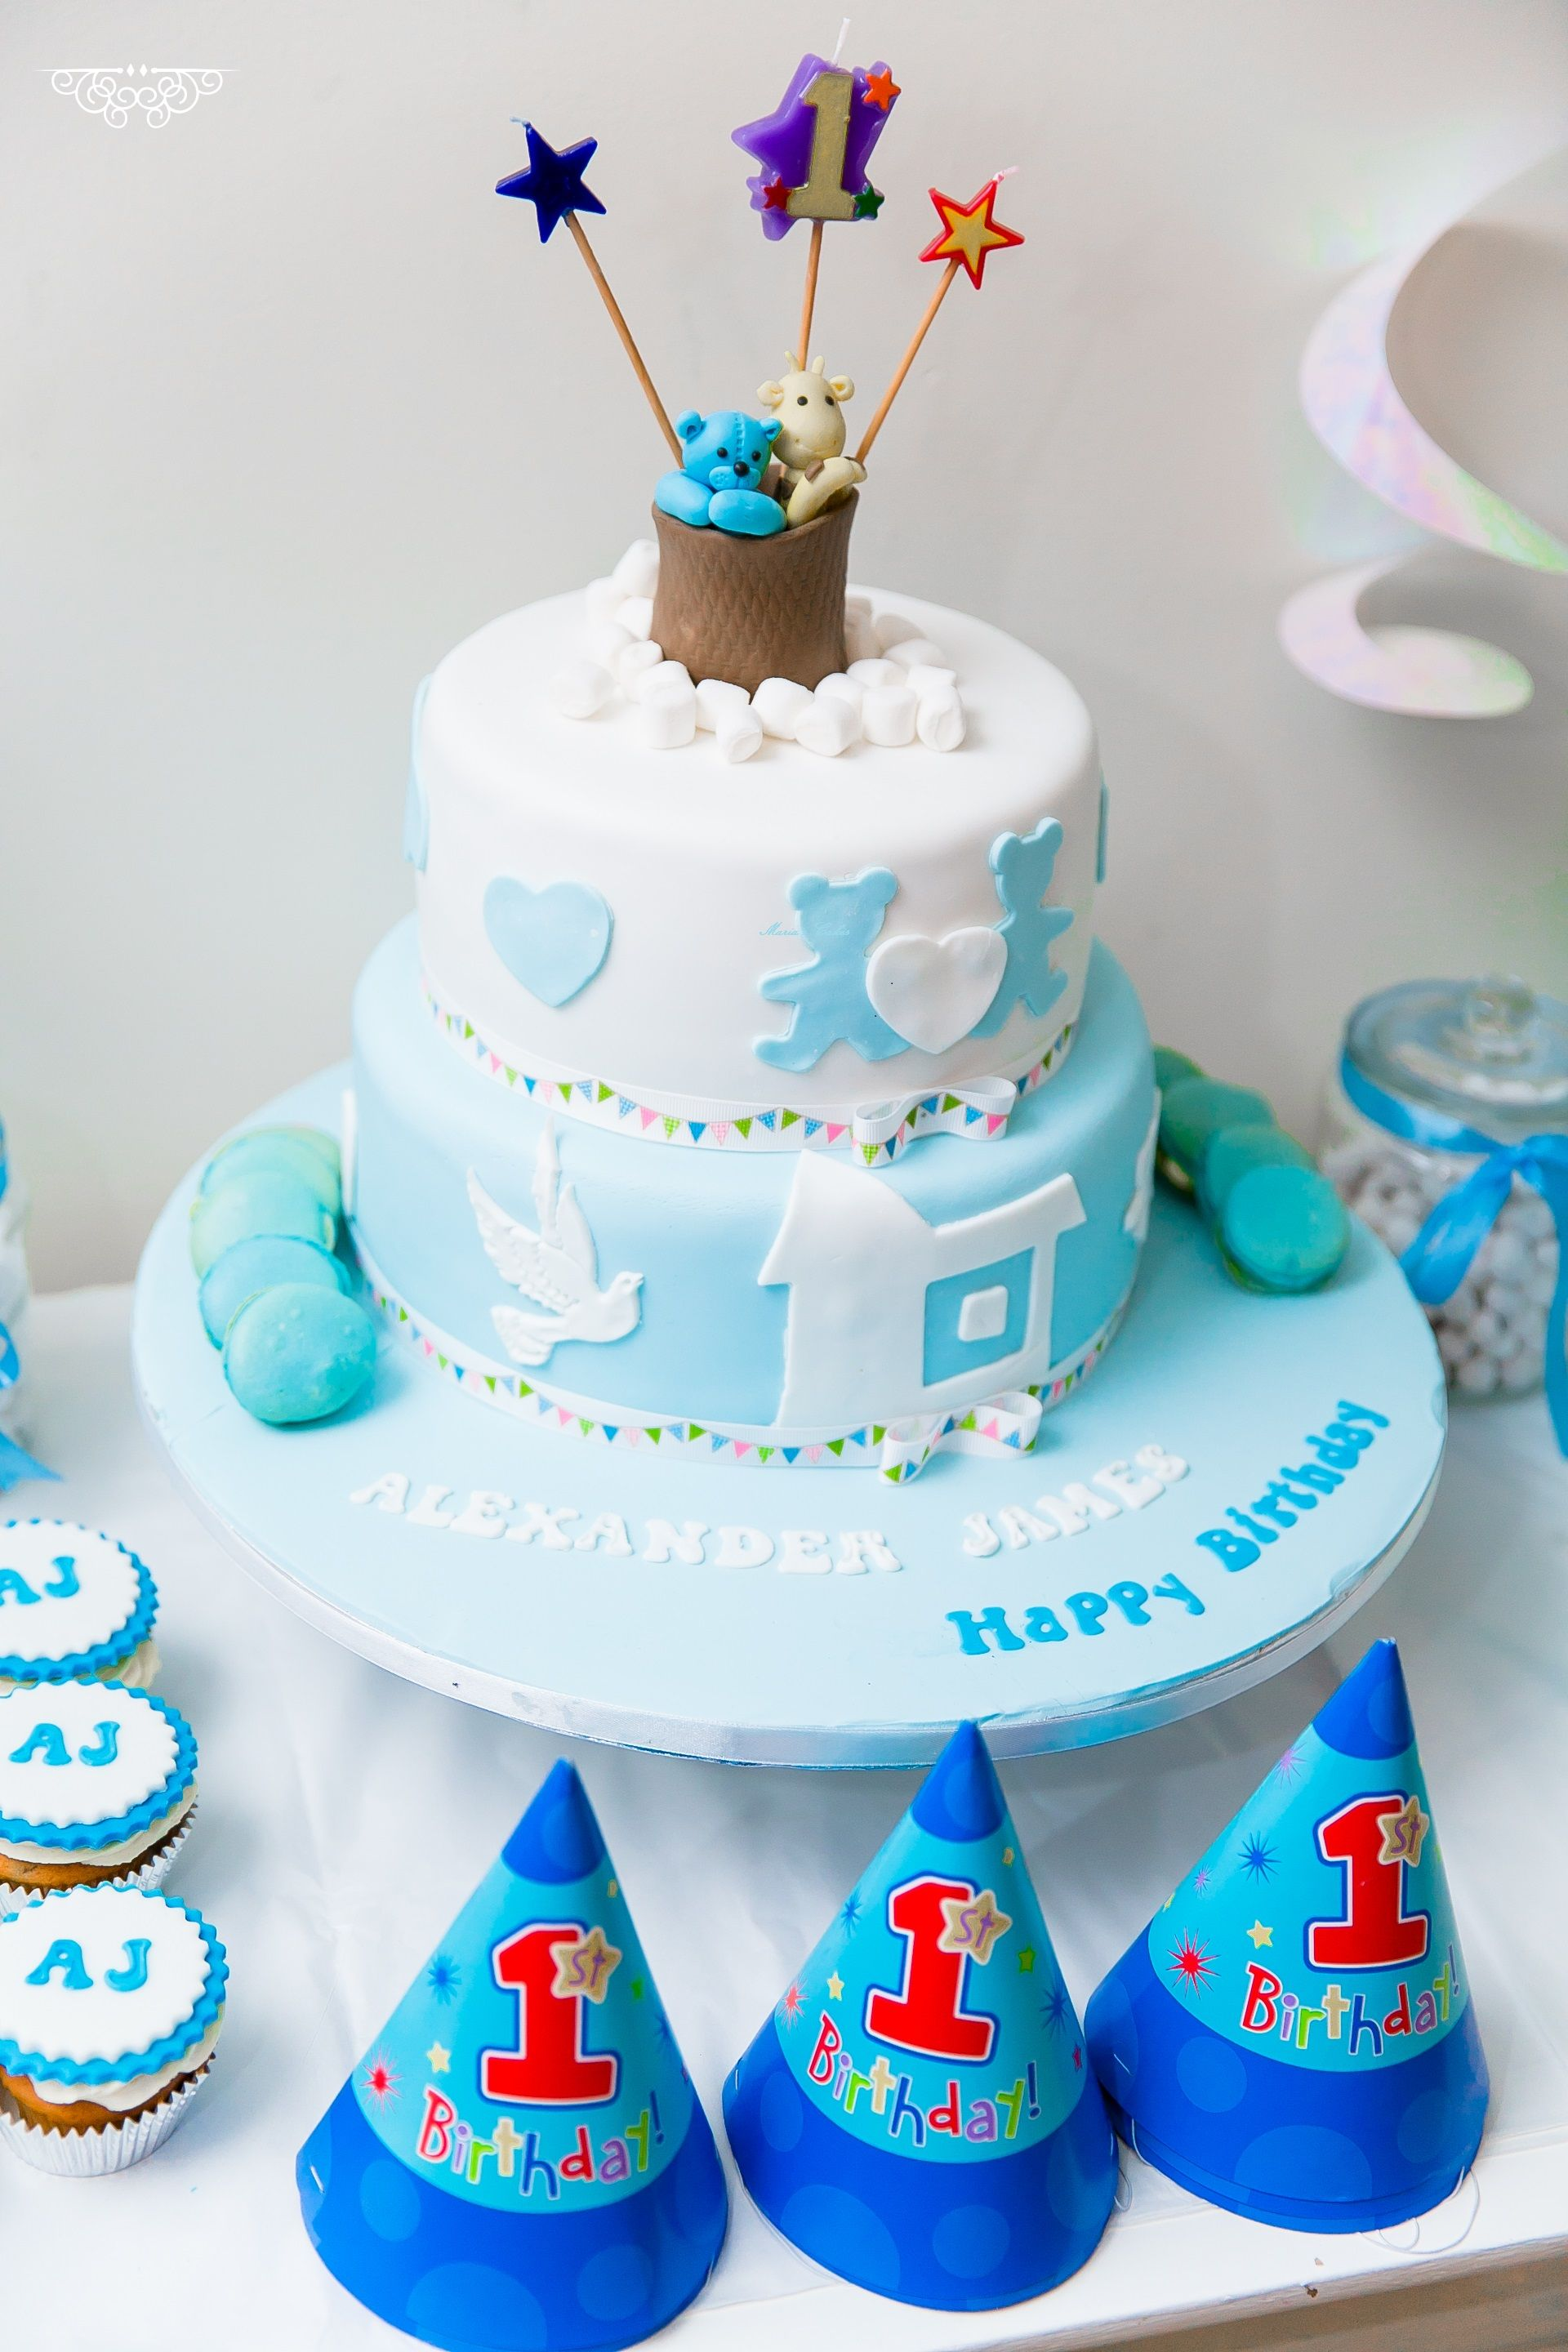 Birthday Cake Ideas For Baby S First Birthday : 1st Baby Boy Birthday Cake Cake Ideas by Maria s Cakes ...